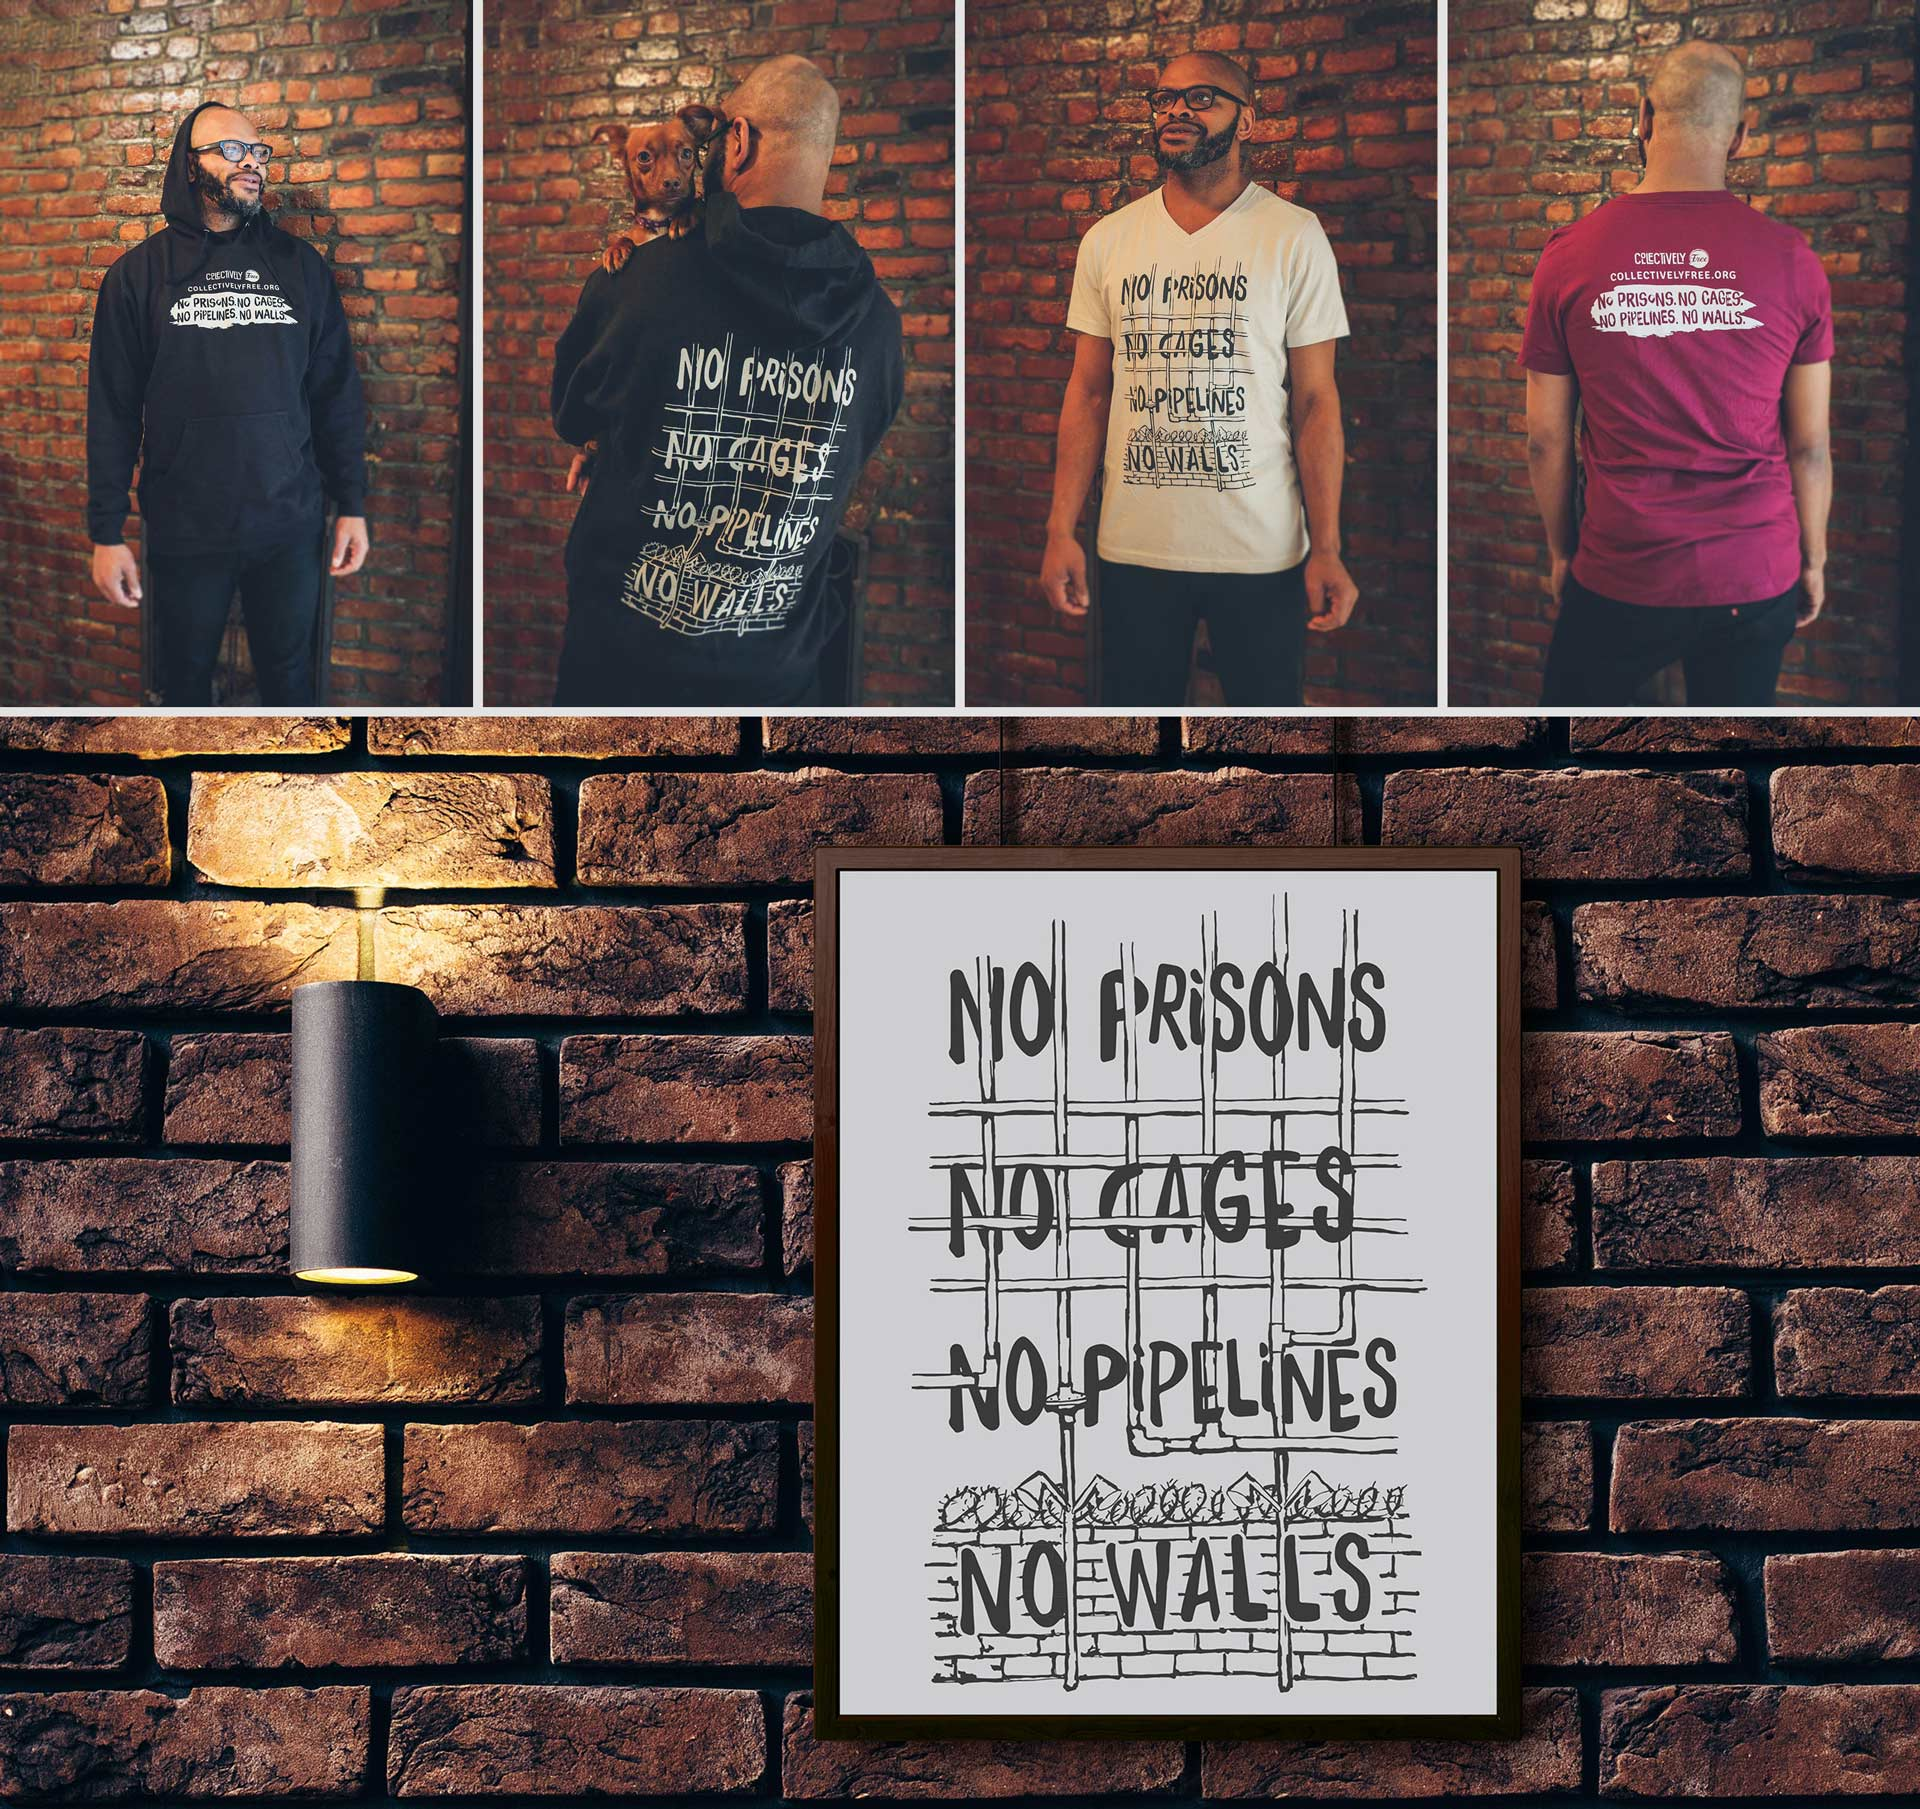 """Hoodies, shirts and mockup poster of typography that reads """"No prisons, no cages, no pipelines, no walls"""". Typography is intertwined"""